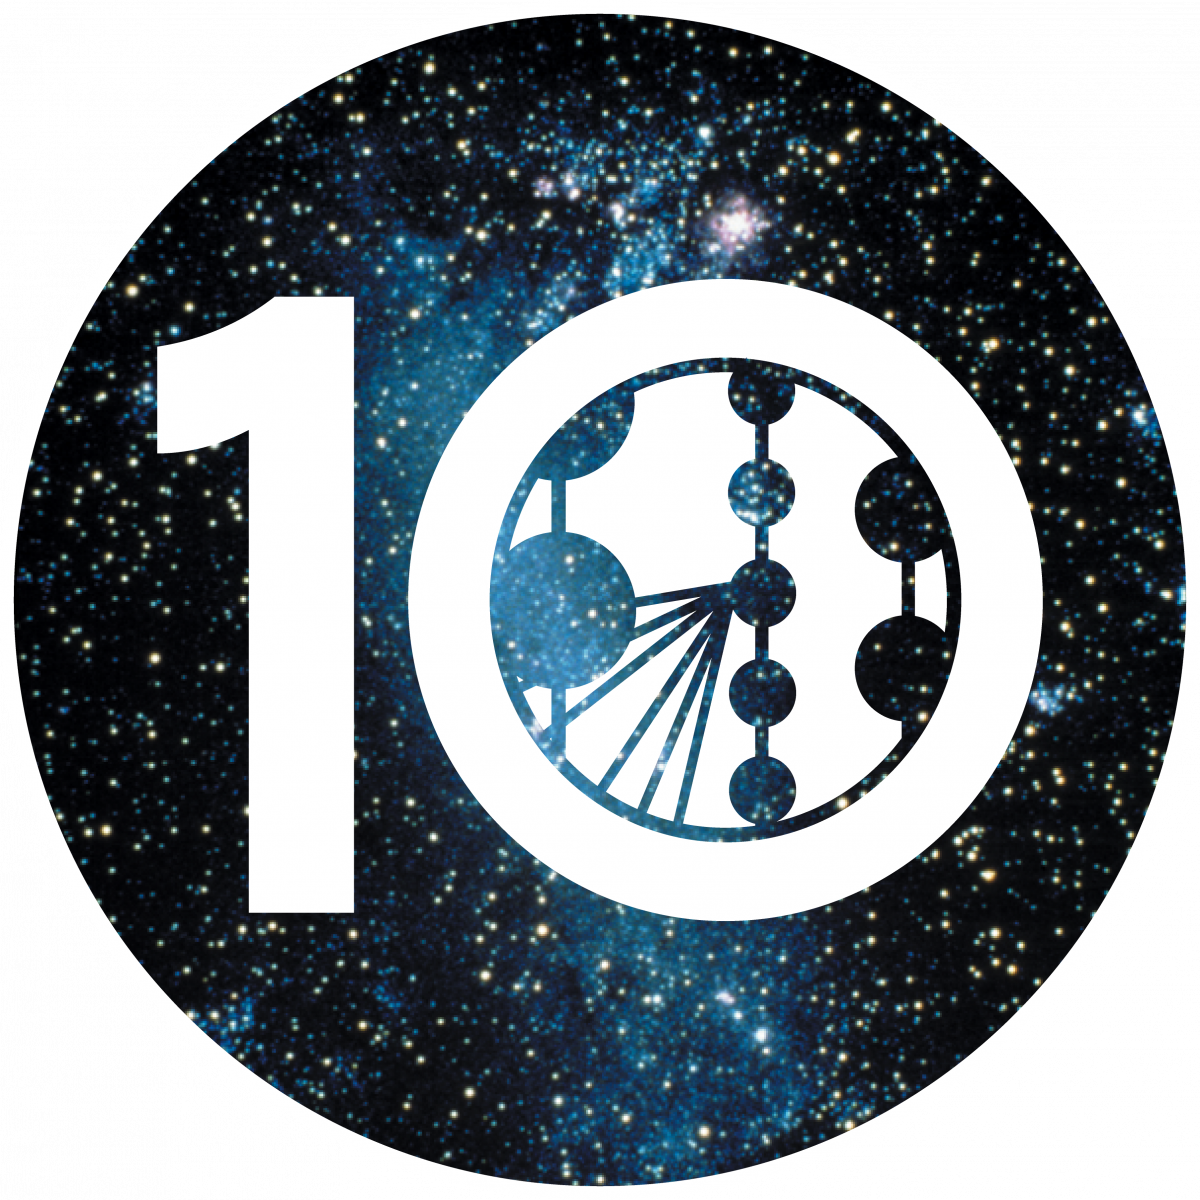 graphic of the number 10 with a cartoon of the IceCube detectors in the 0. Background is of outerspace/night sky, lots of stars